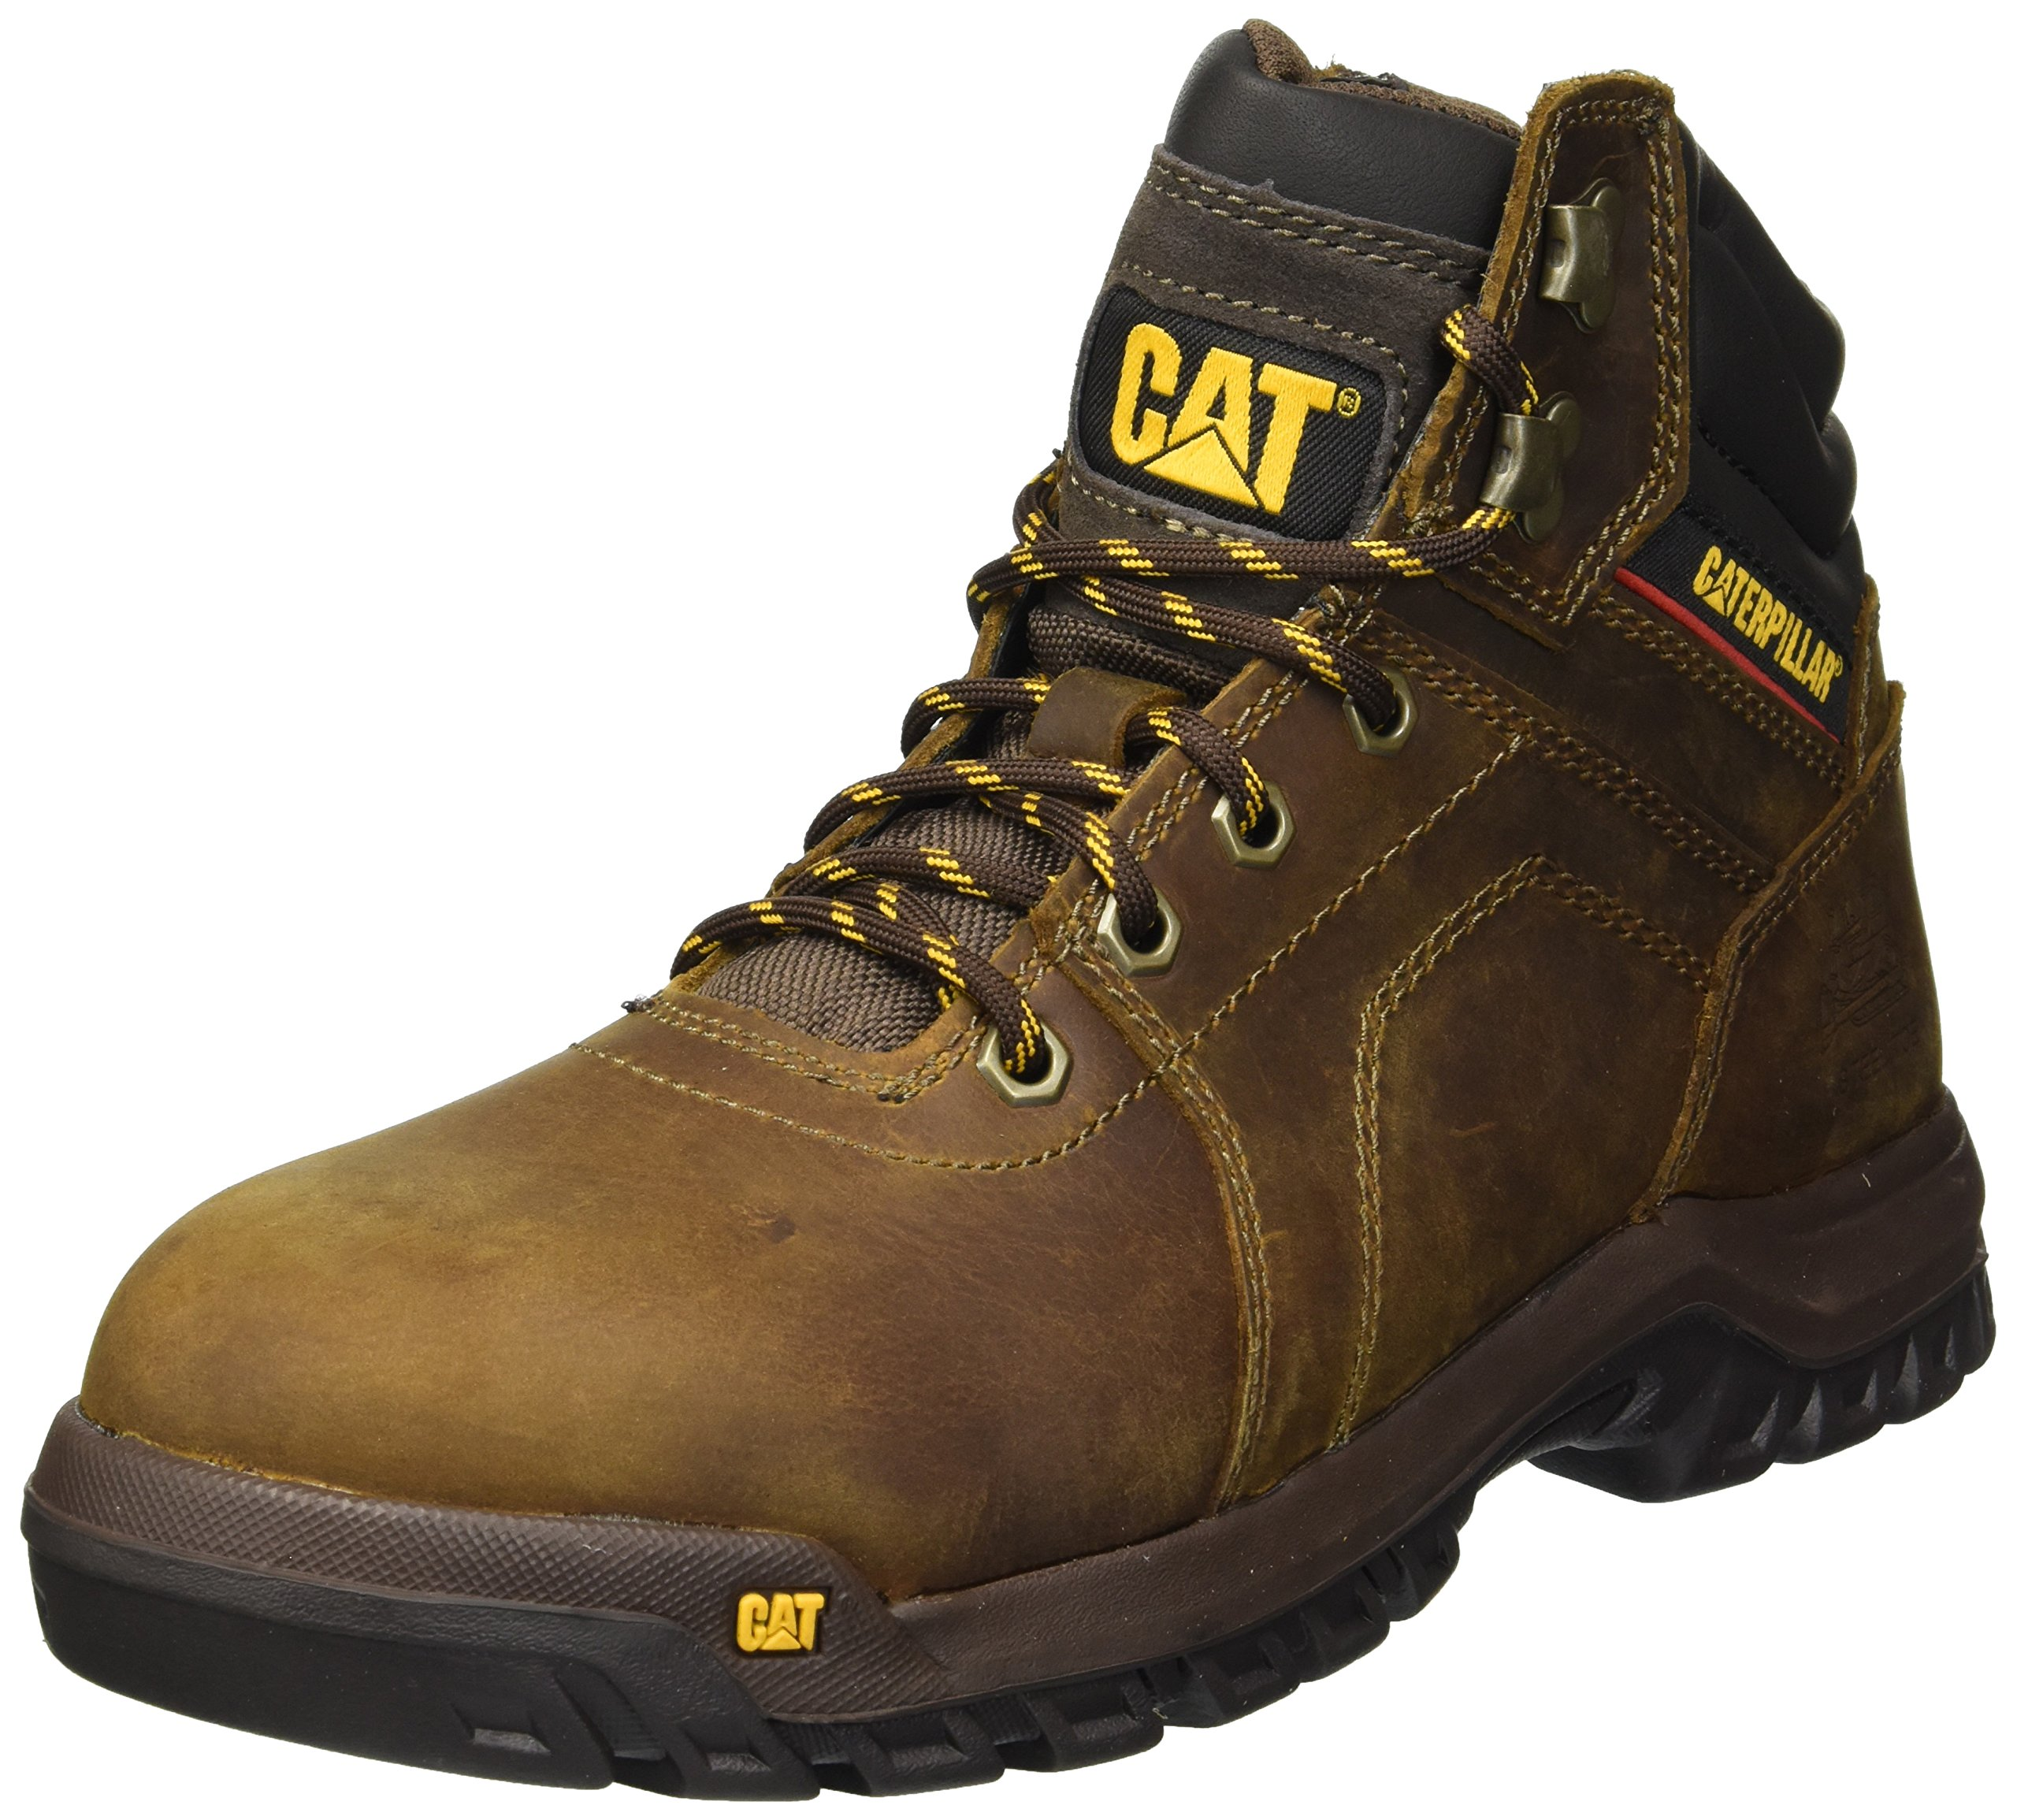 Caterpillar Men's Diffuse Steel Toe Industrial Boot, Brown, 13 Medium US by Caterpillar